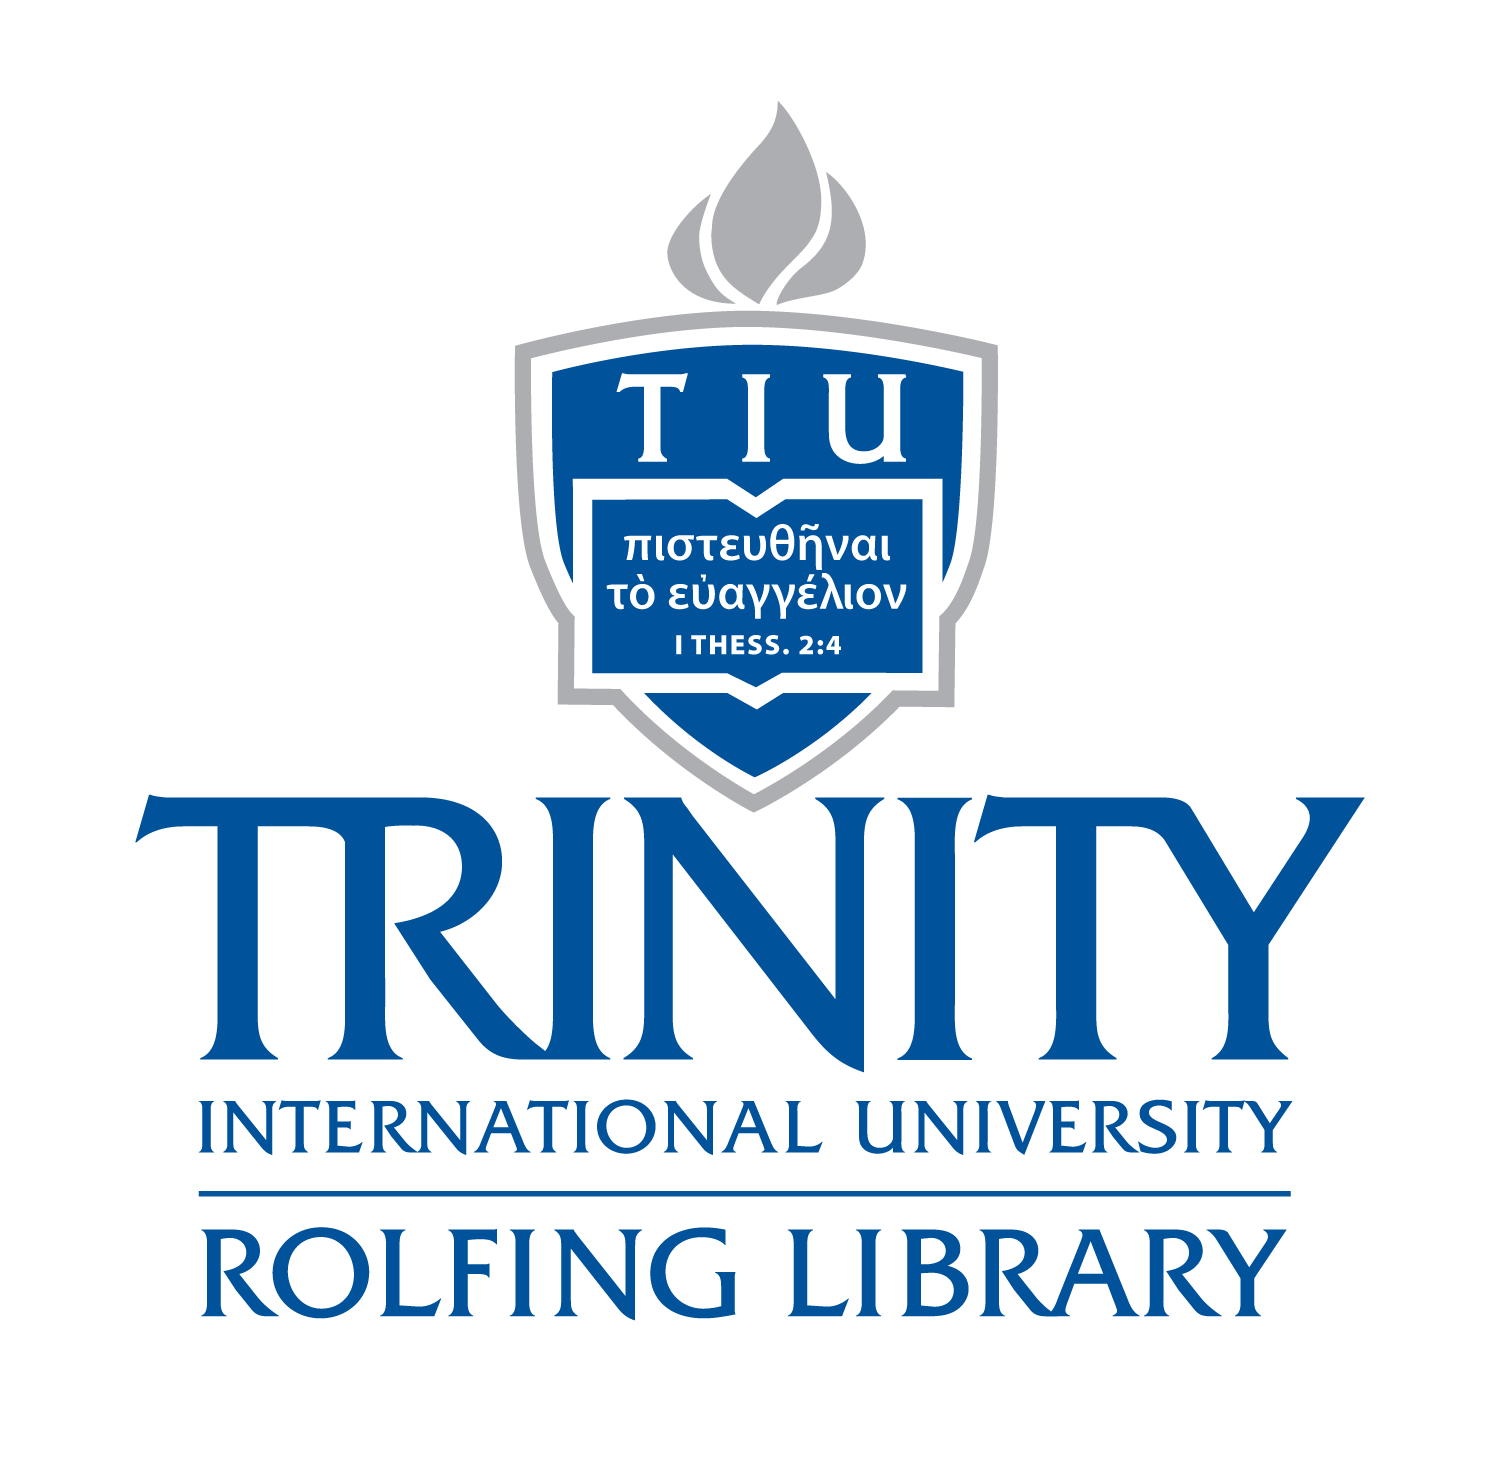 Rolfing_Library_logo_Vertical.png